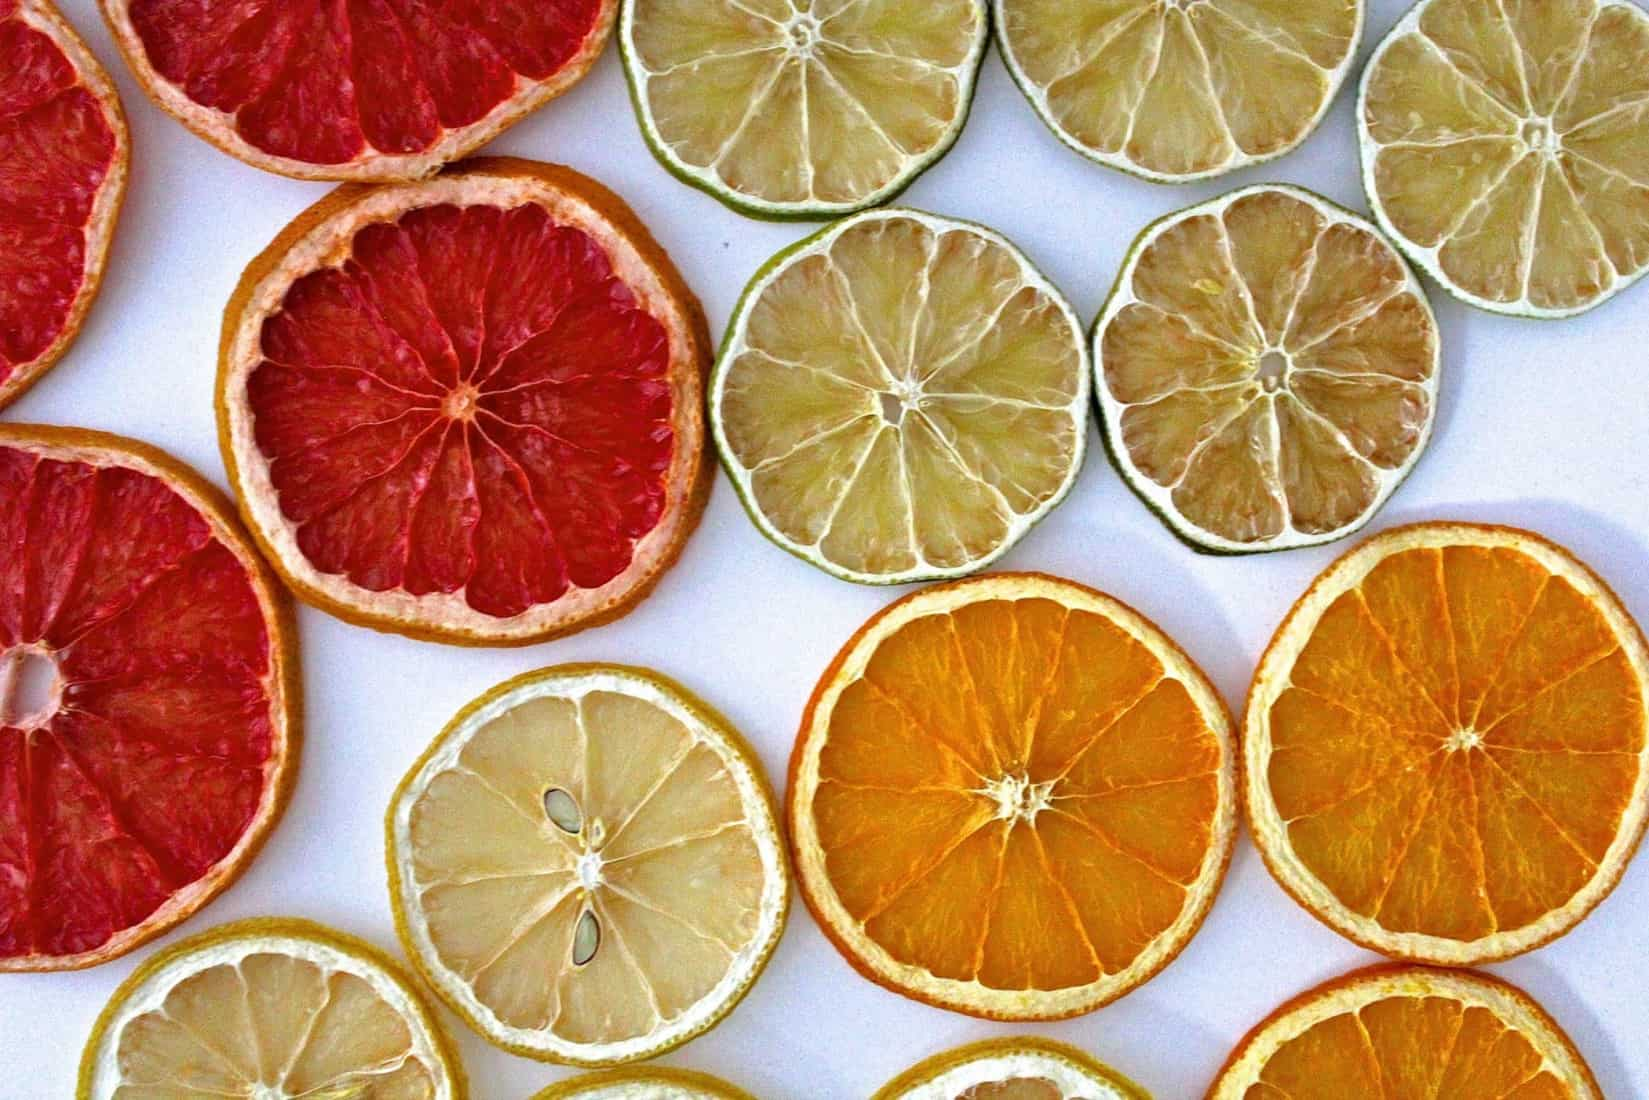 dehydrated citrus oranges grapefruit lemons and limes